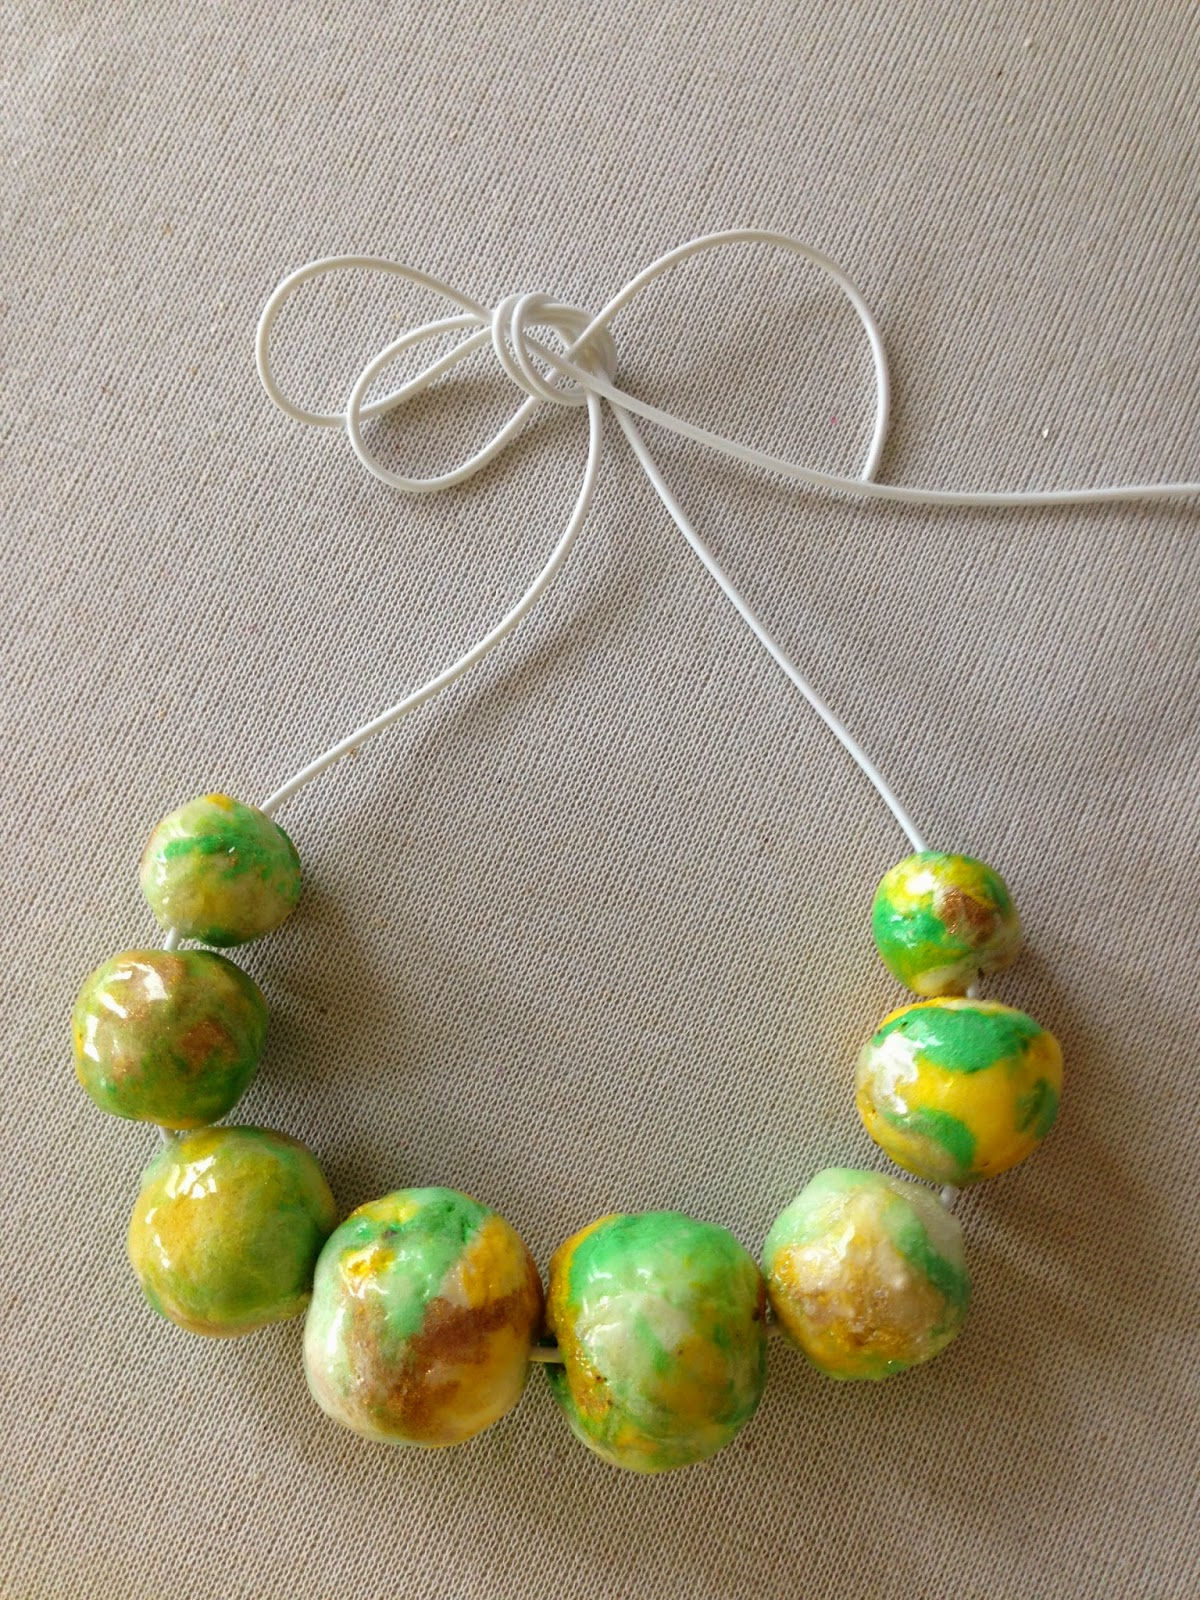 jewelry img and janice beads mache paperbeads mae org paper